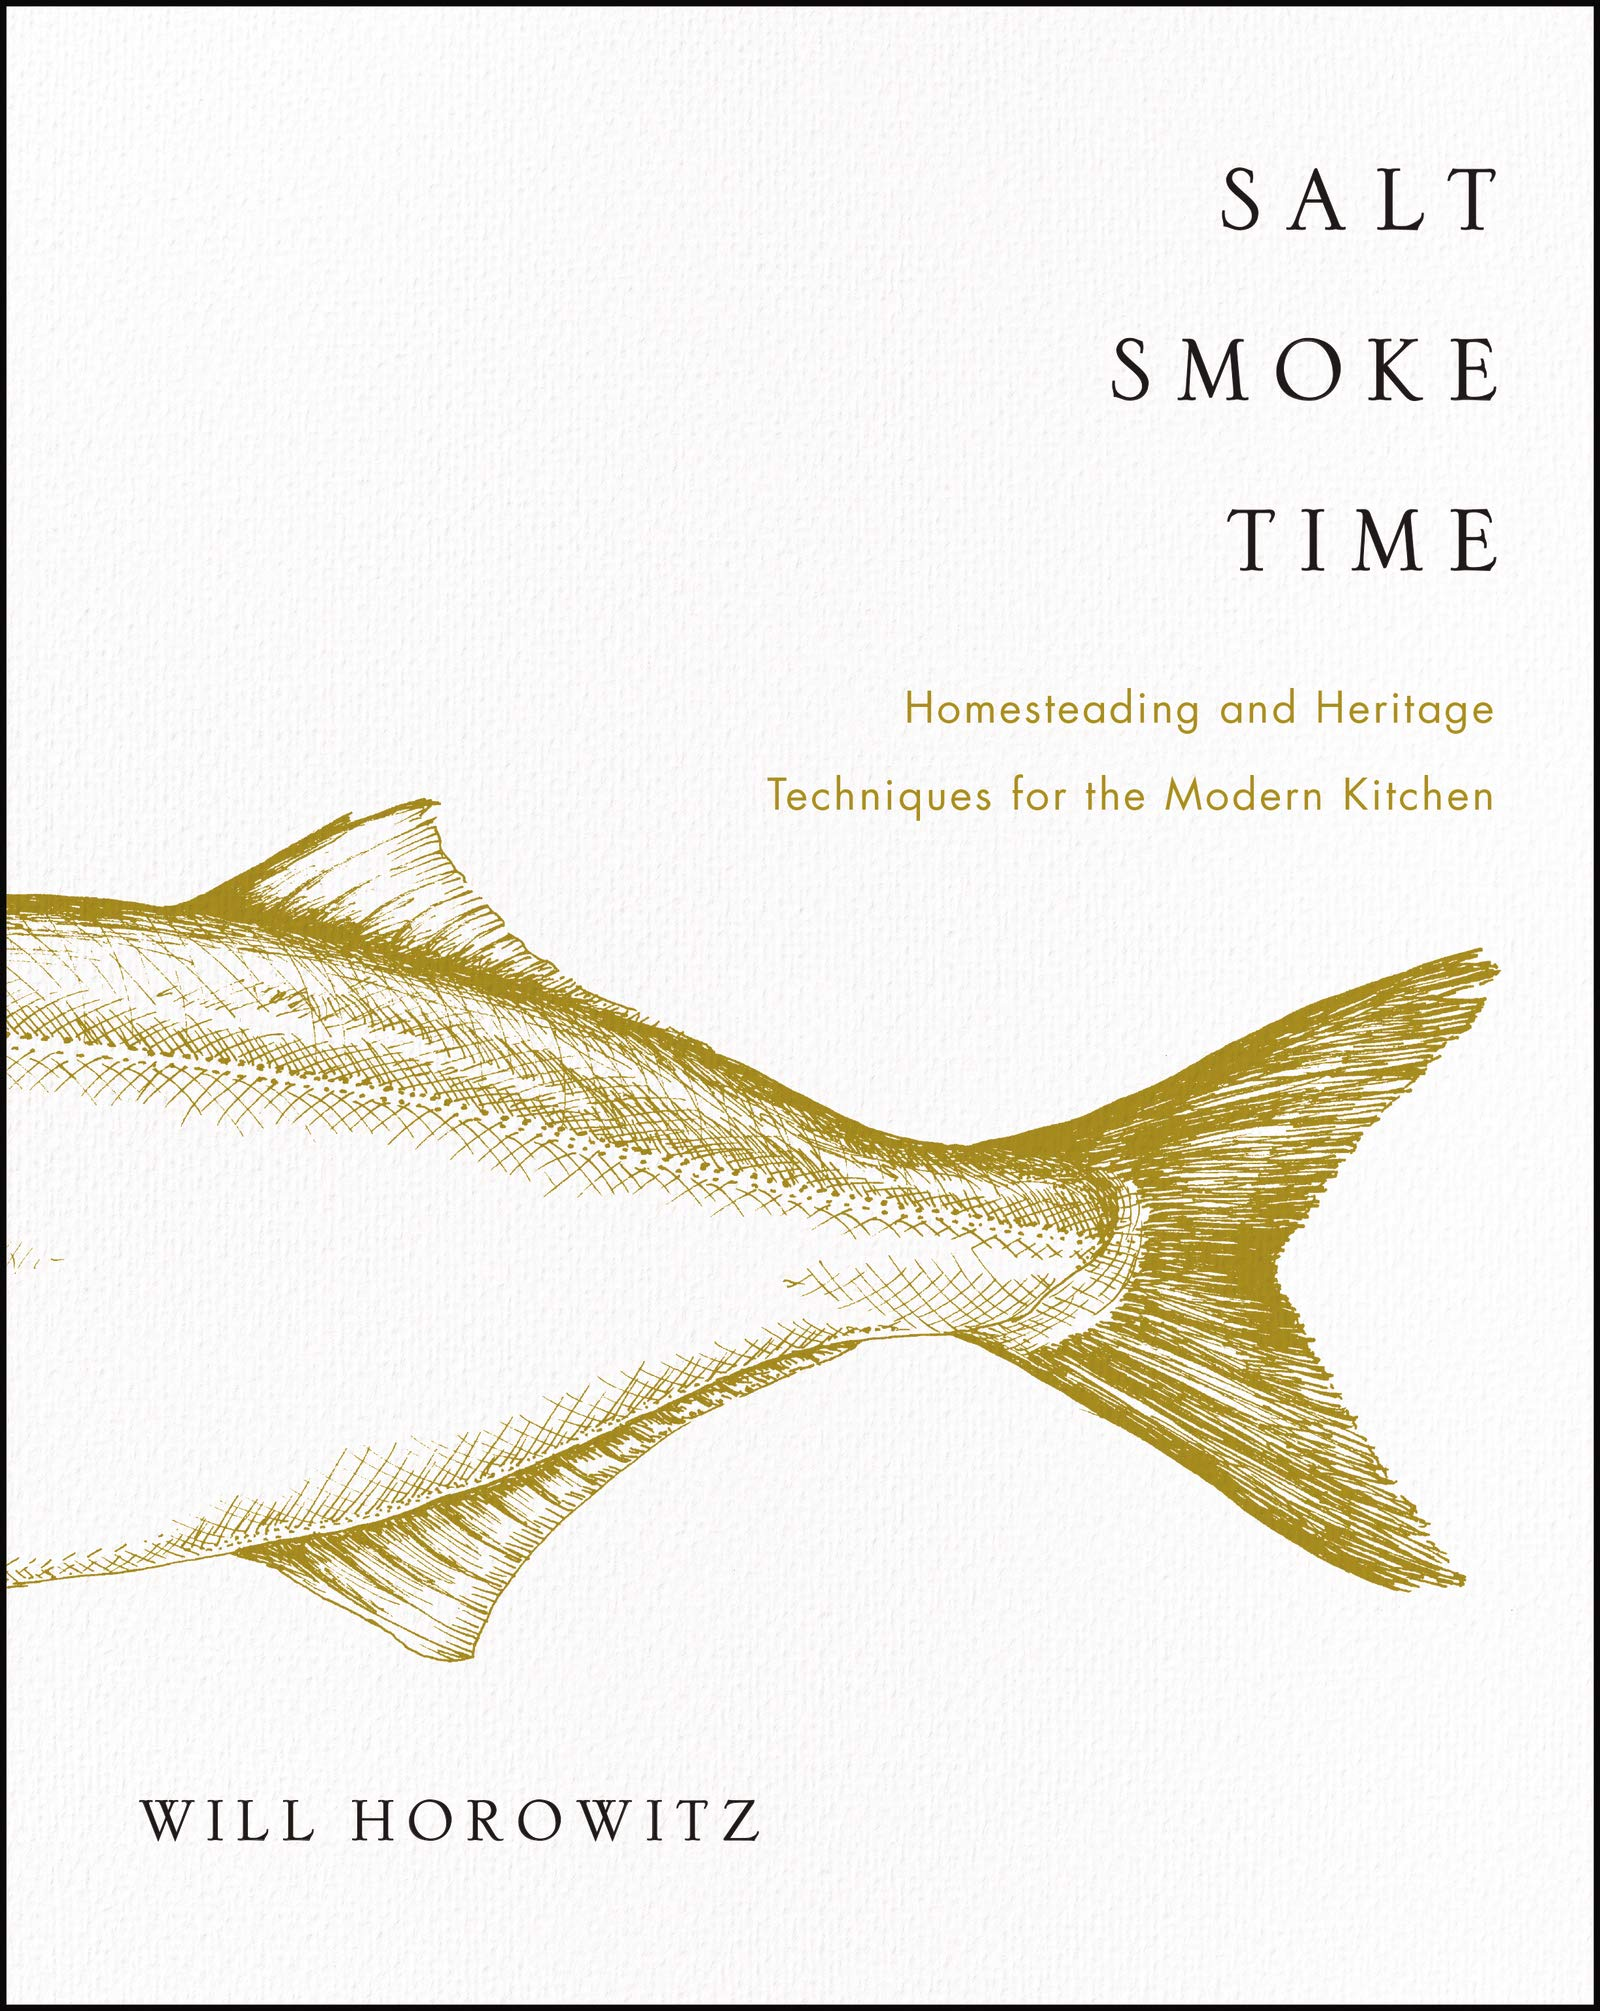 Salt Smoke Time, by Will Horowitz, Marisa Dobson, and Julie Horowitz